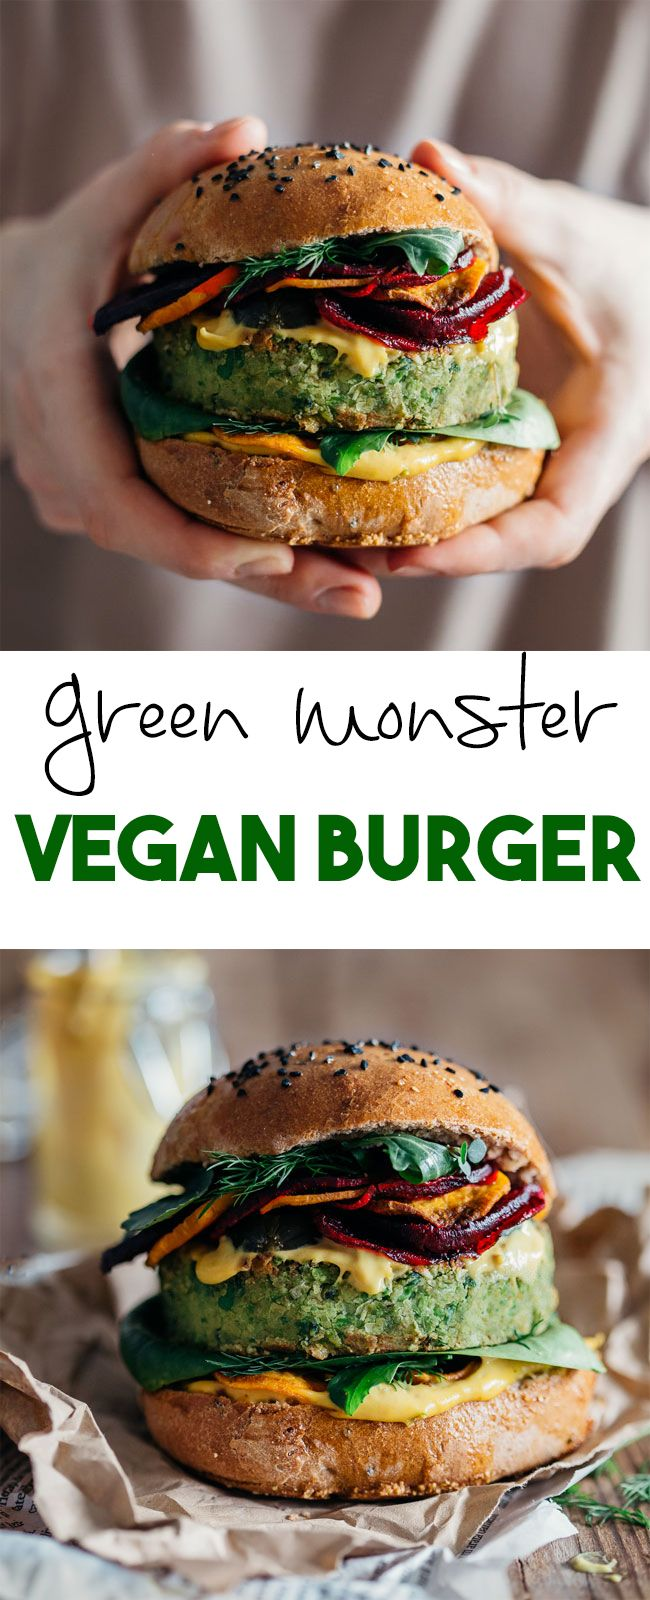 Green Monster Vegan Burger with sweet corn and peas, topped with beet and sweet potato chips and bathed in spicy vegan mayo. Jamie Oliver & Ellie Goulding recipe | TheAwesomeGreen.com